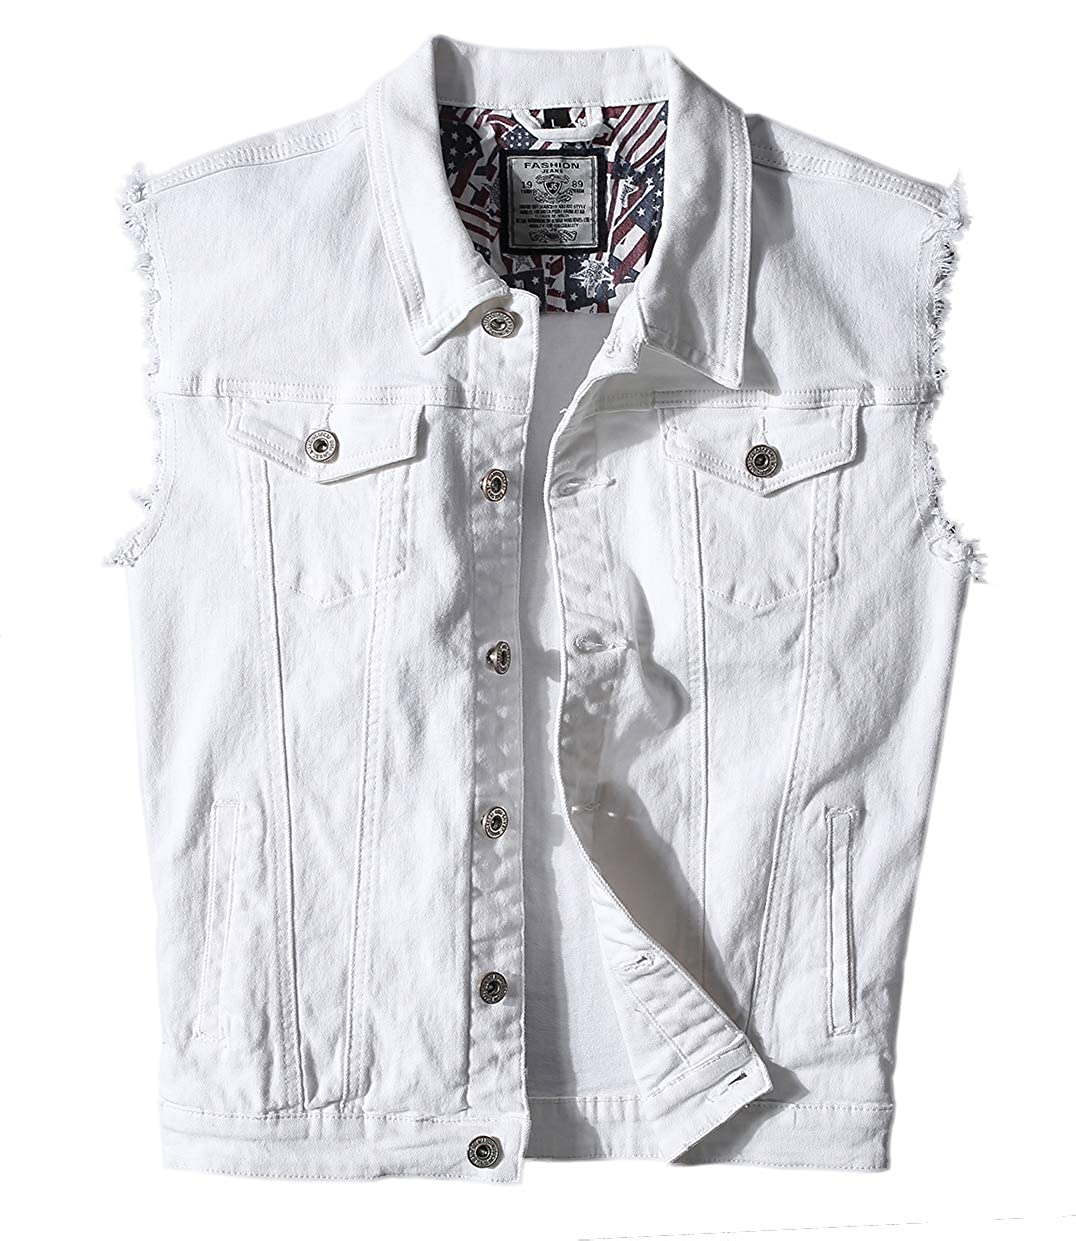 Heihuohua Men's Casual Button-Down Denim Vest Trucker Jean Jacket